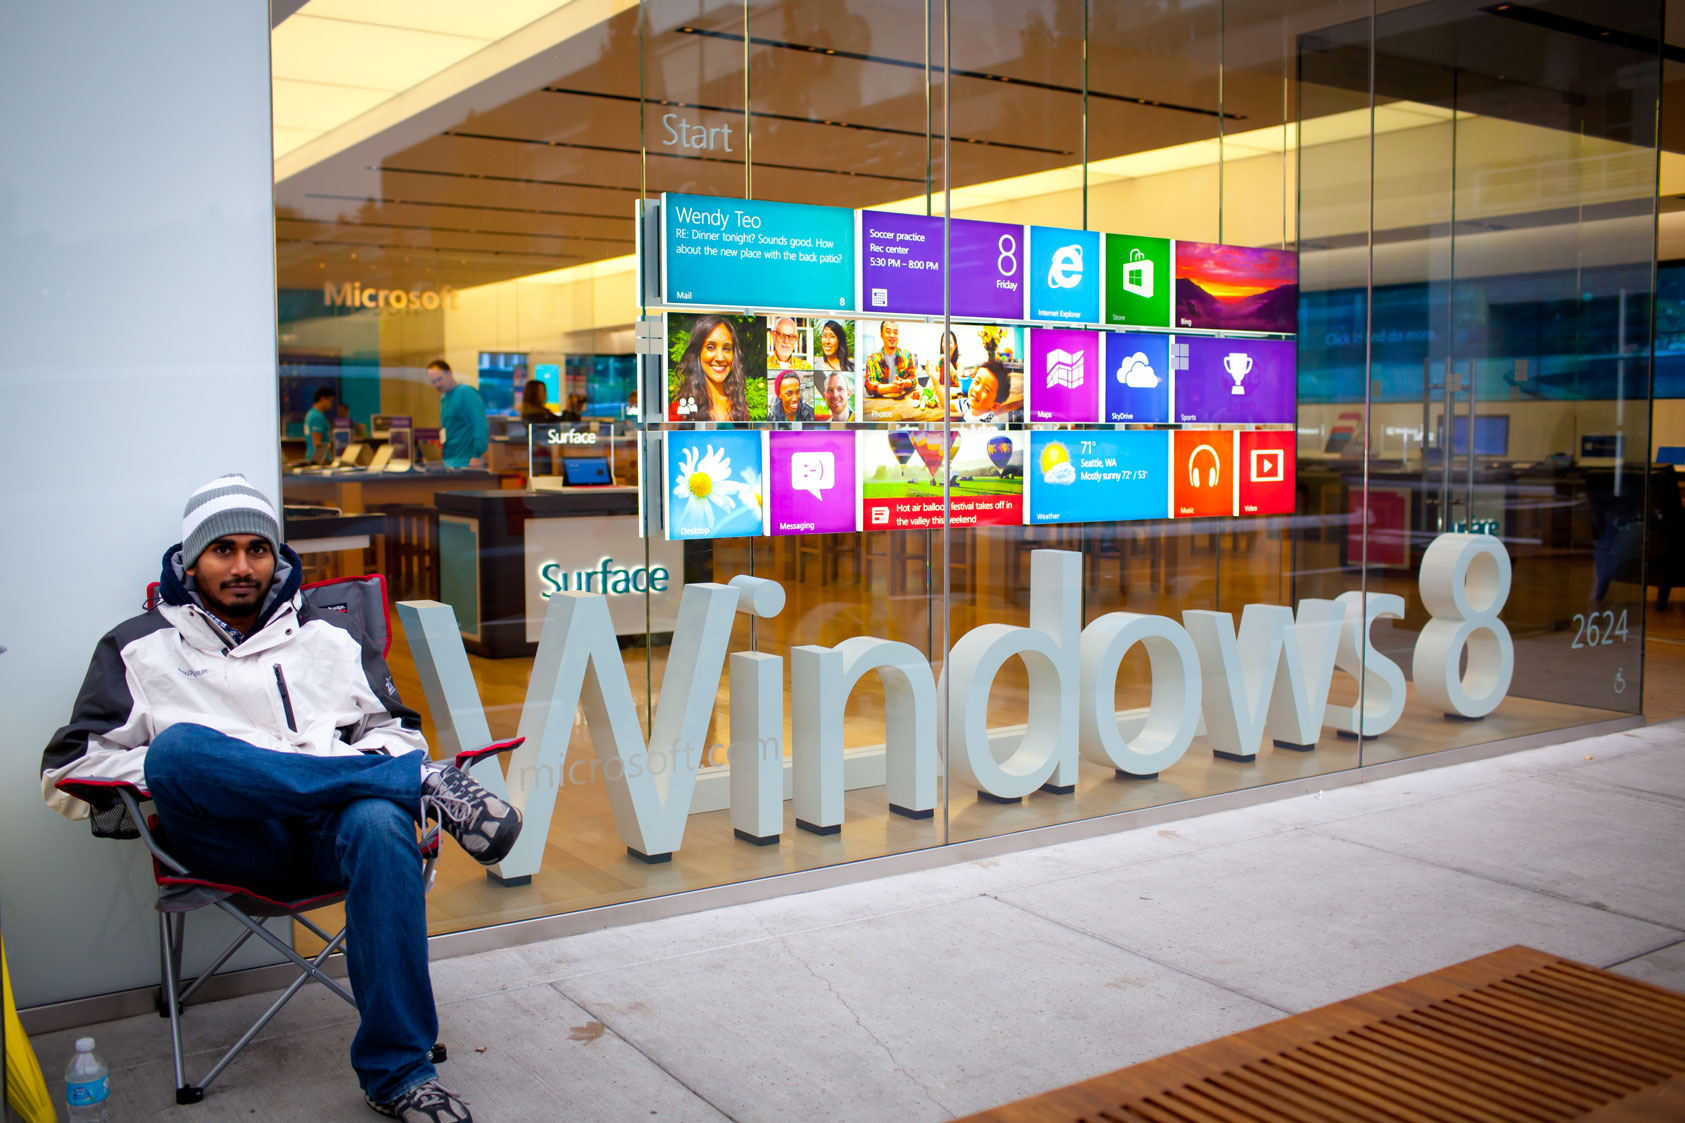 A prepared shopper waits for the Seattle Microsoft Store to open, Oct. 26, 2012.